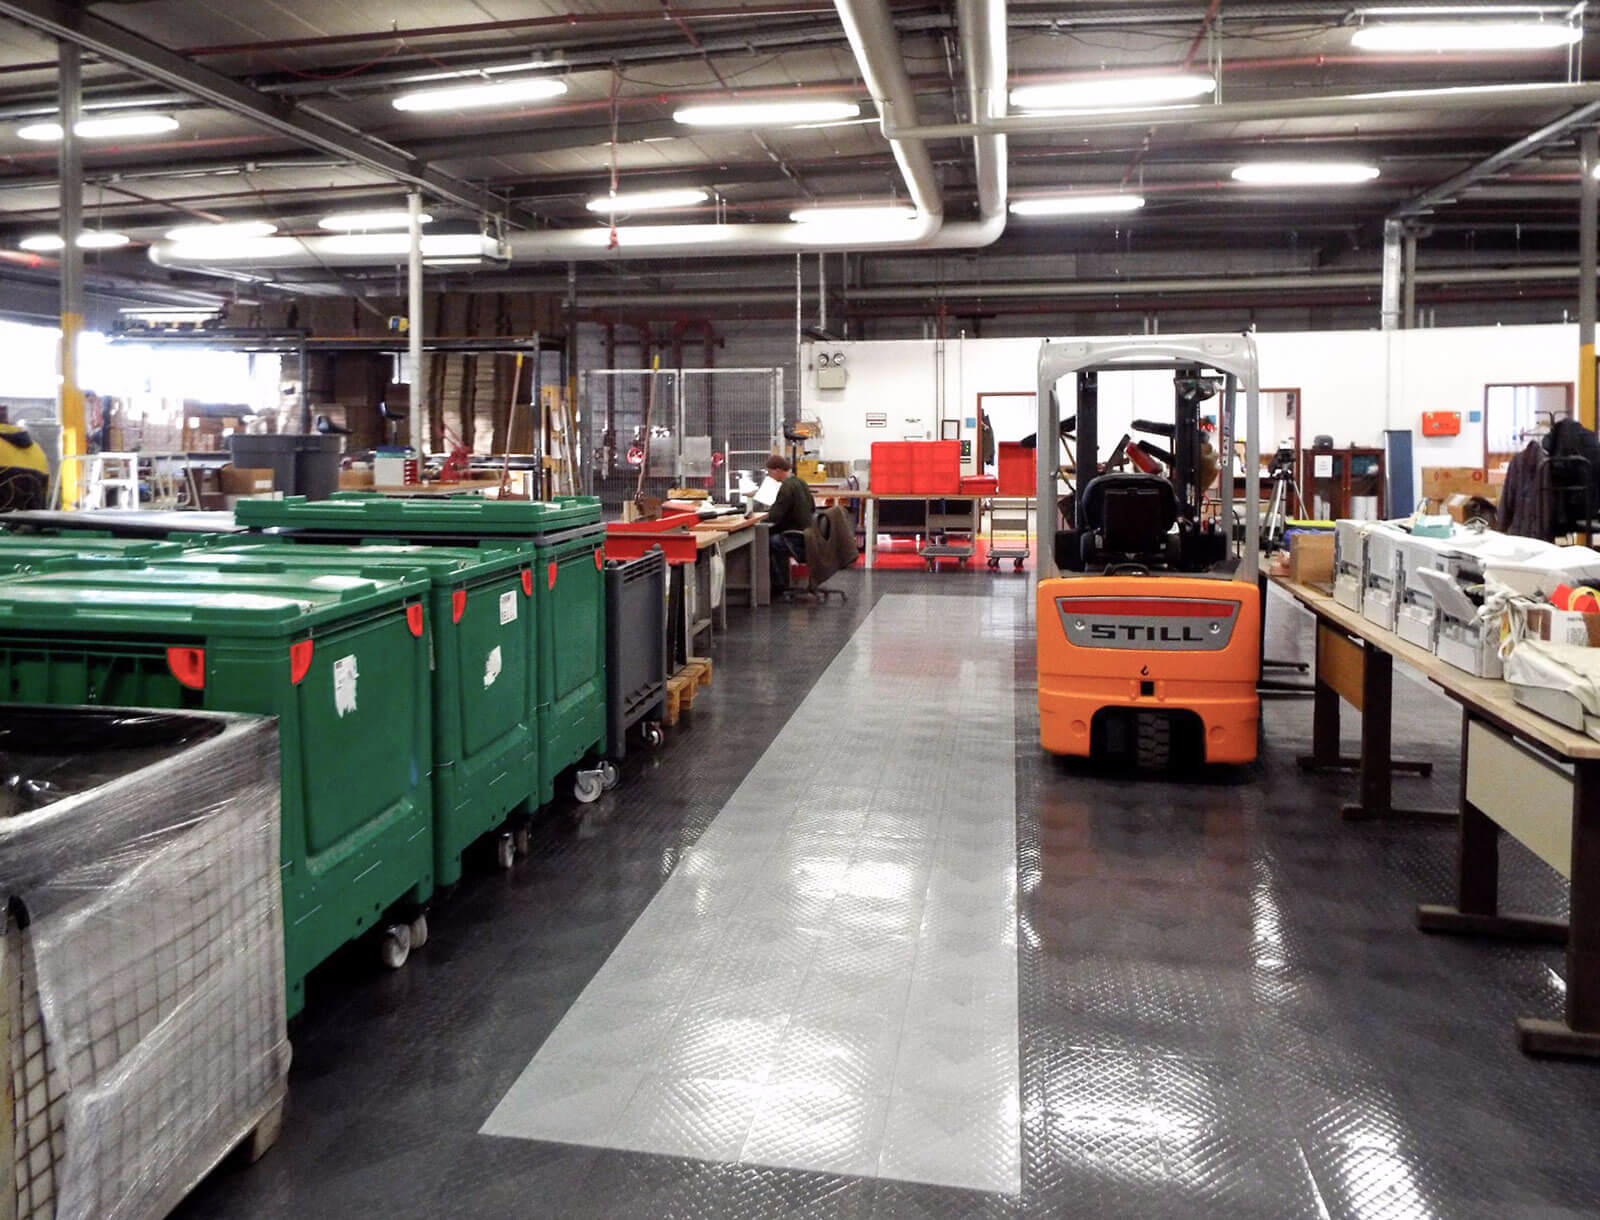 Manufacturing area with RaceDeck Diamond alloy and graphite flooring